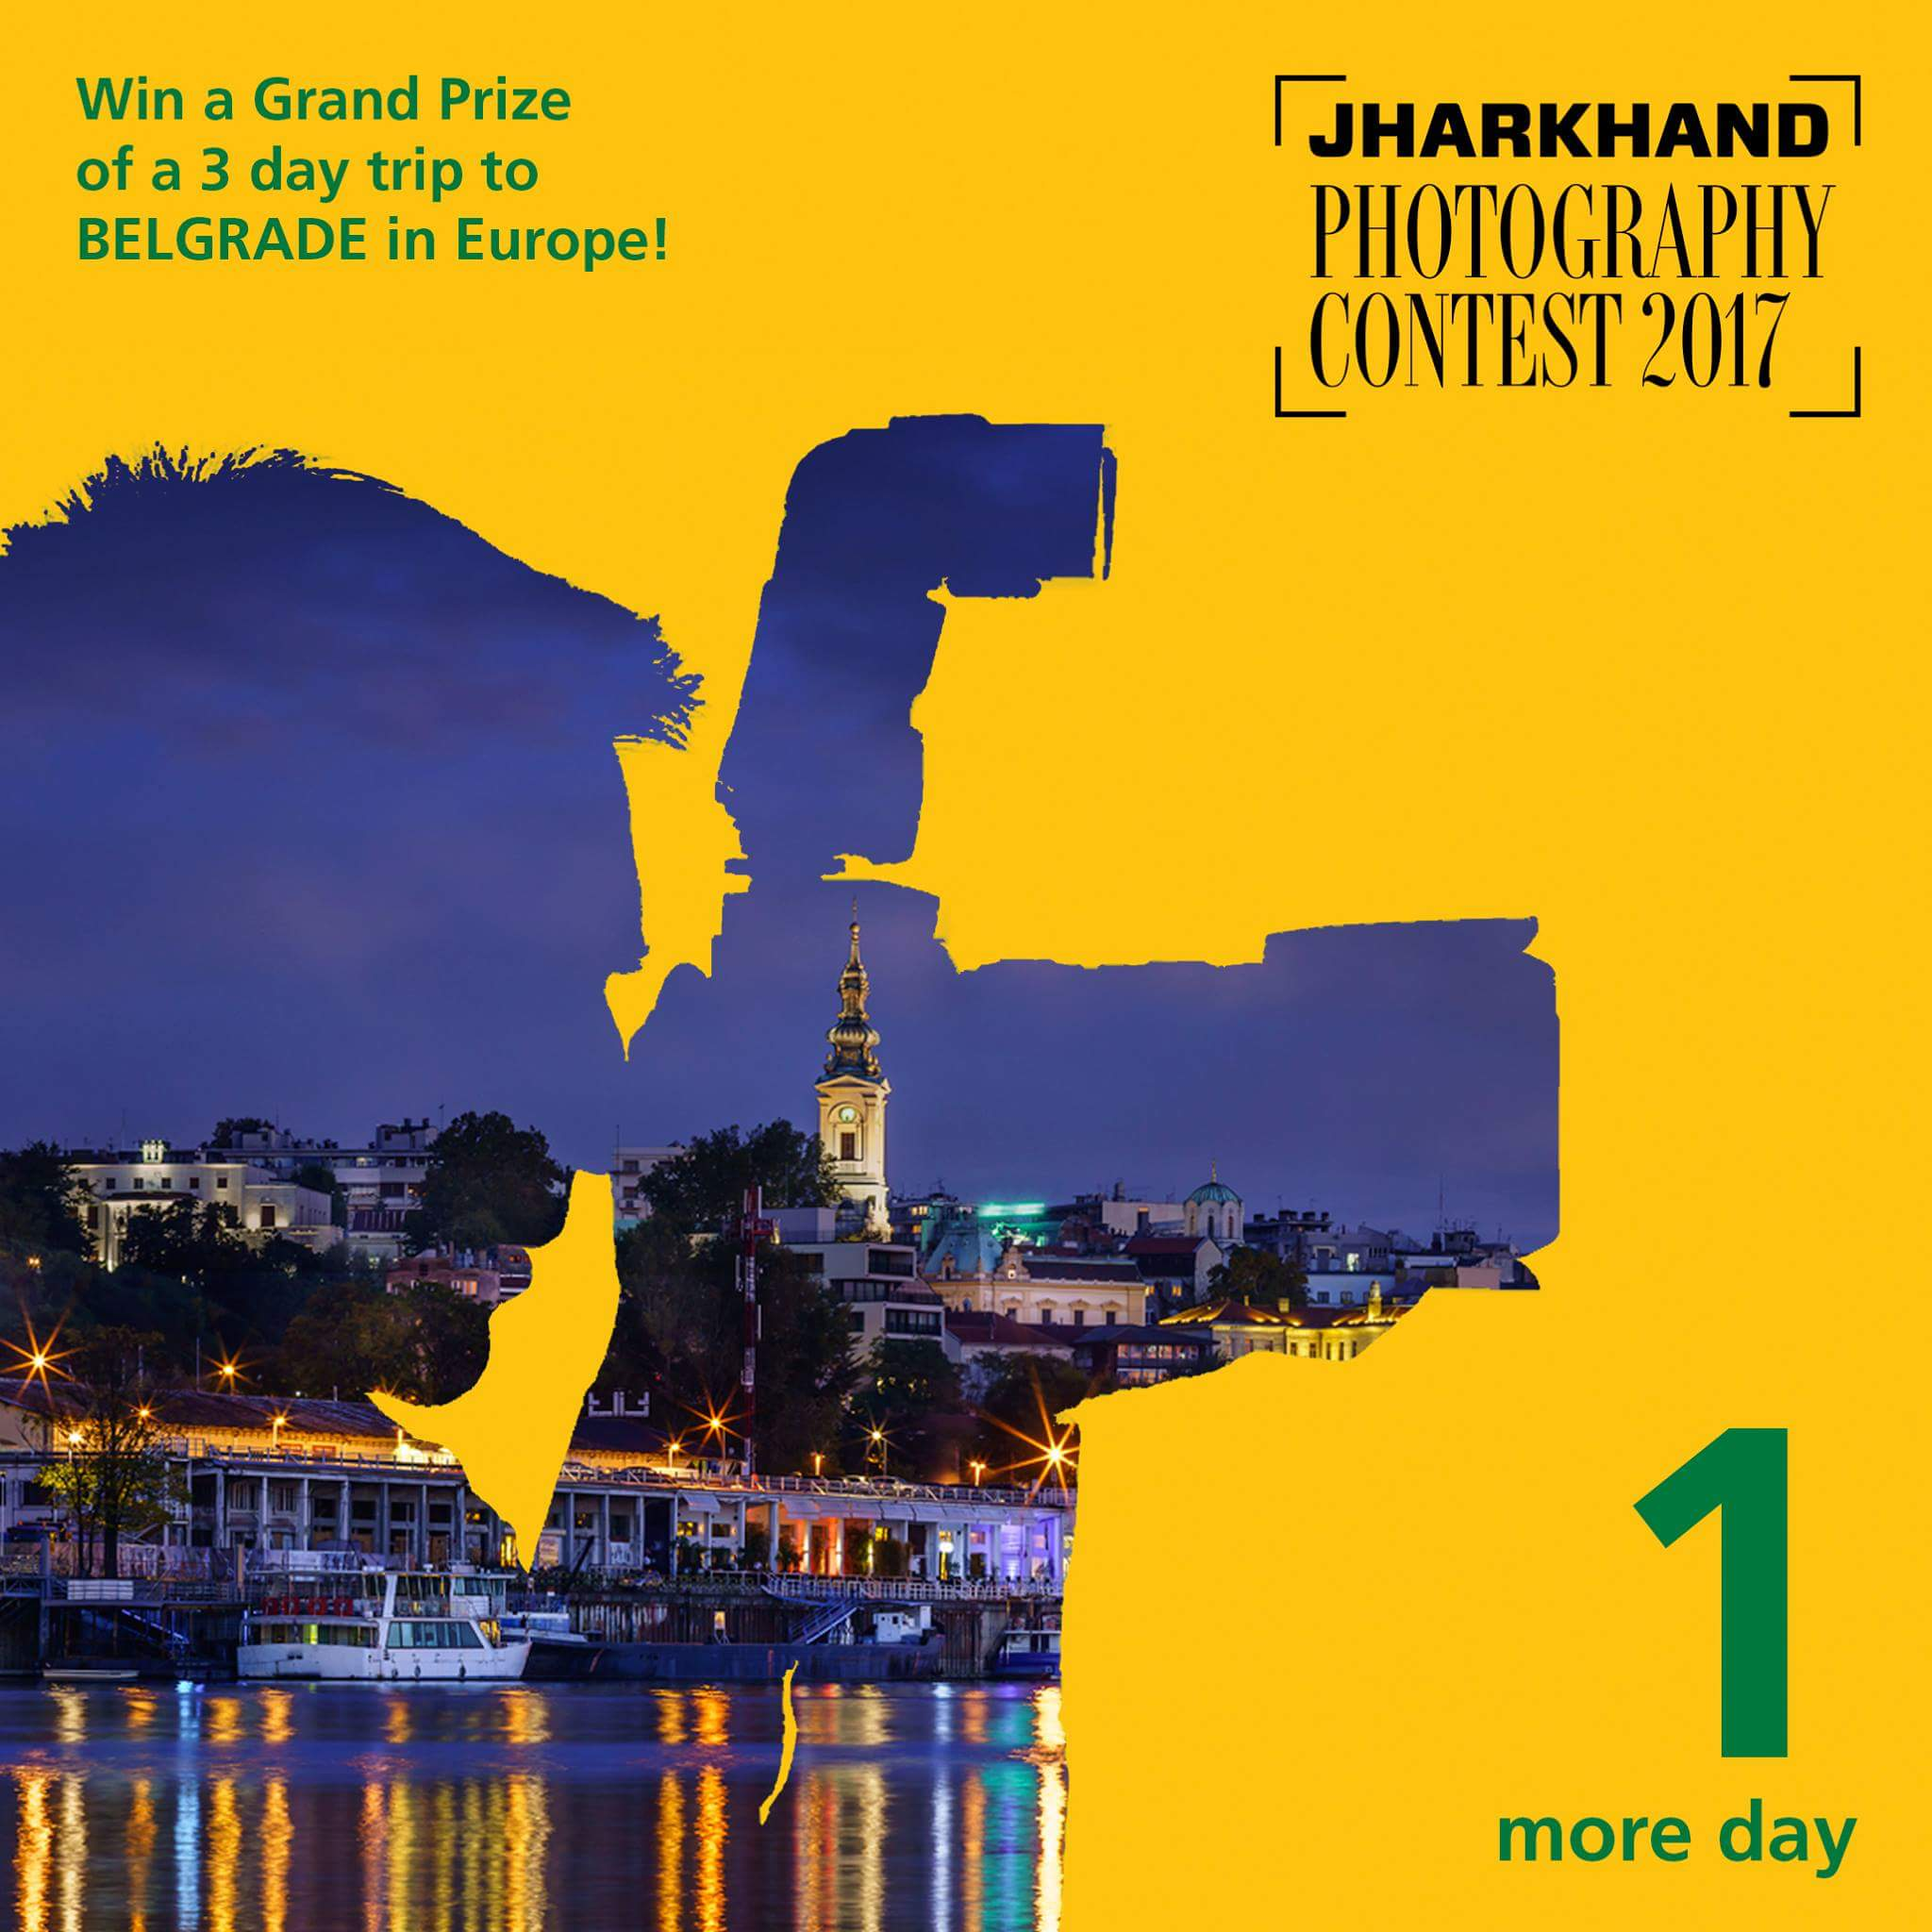 Picture Jharkhand Photography Contest 2017 : One day left.